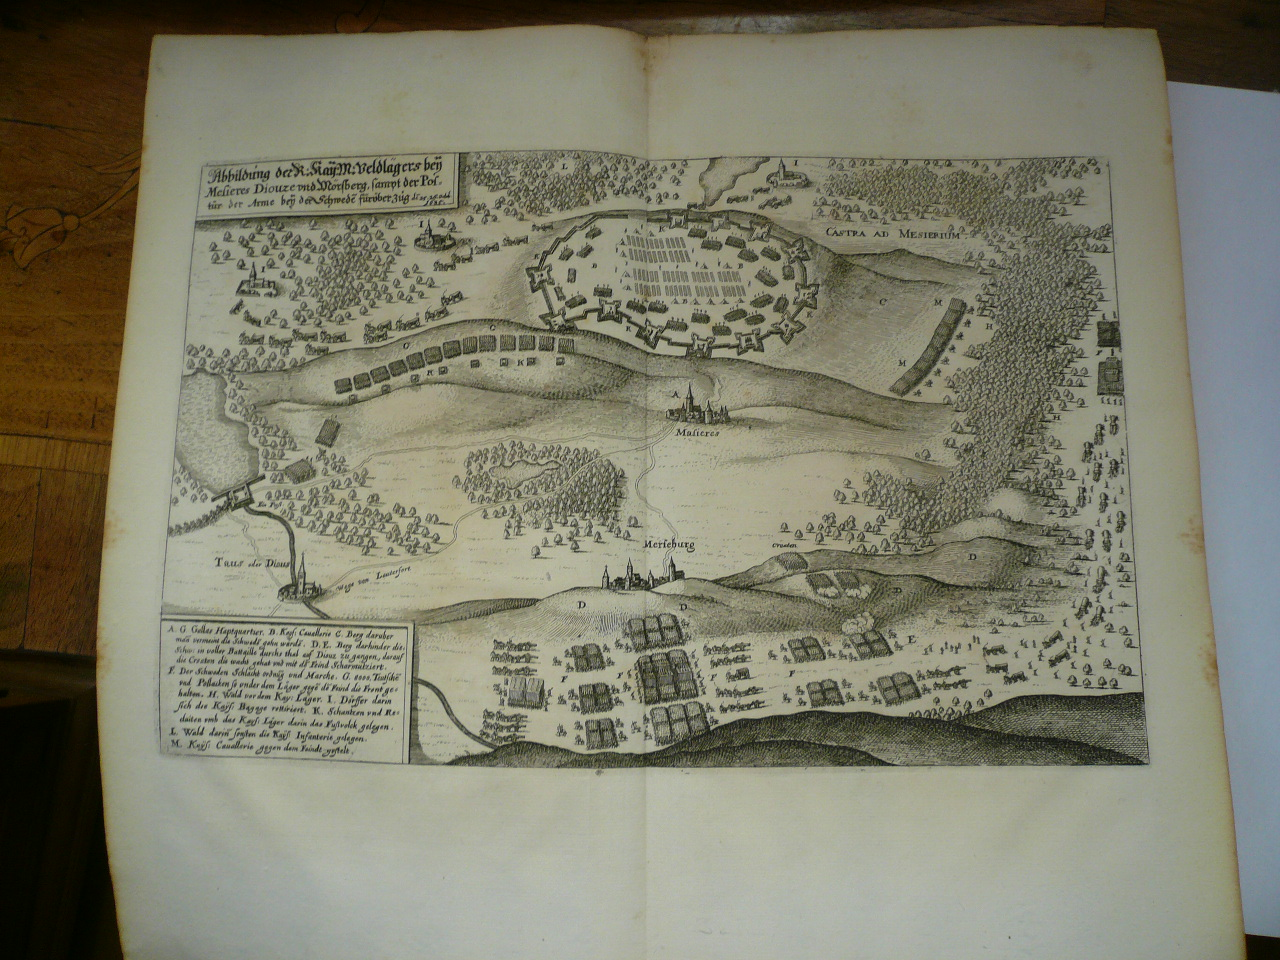 Maisieres/Merseburg, anno 1650, Merian, copperengraving